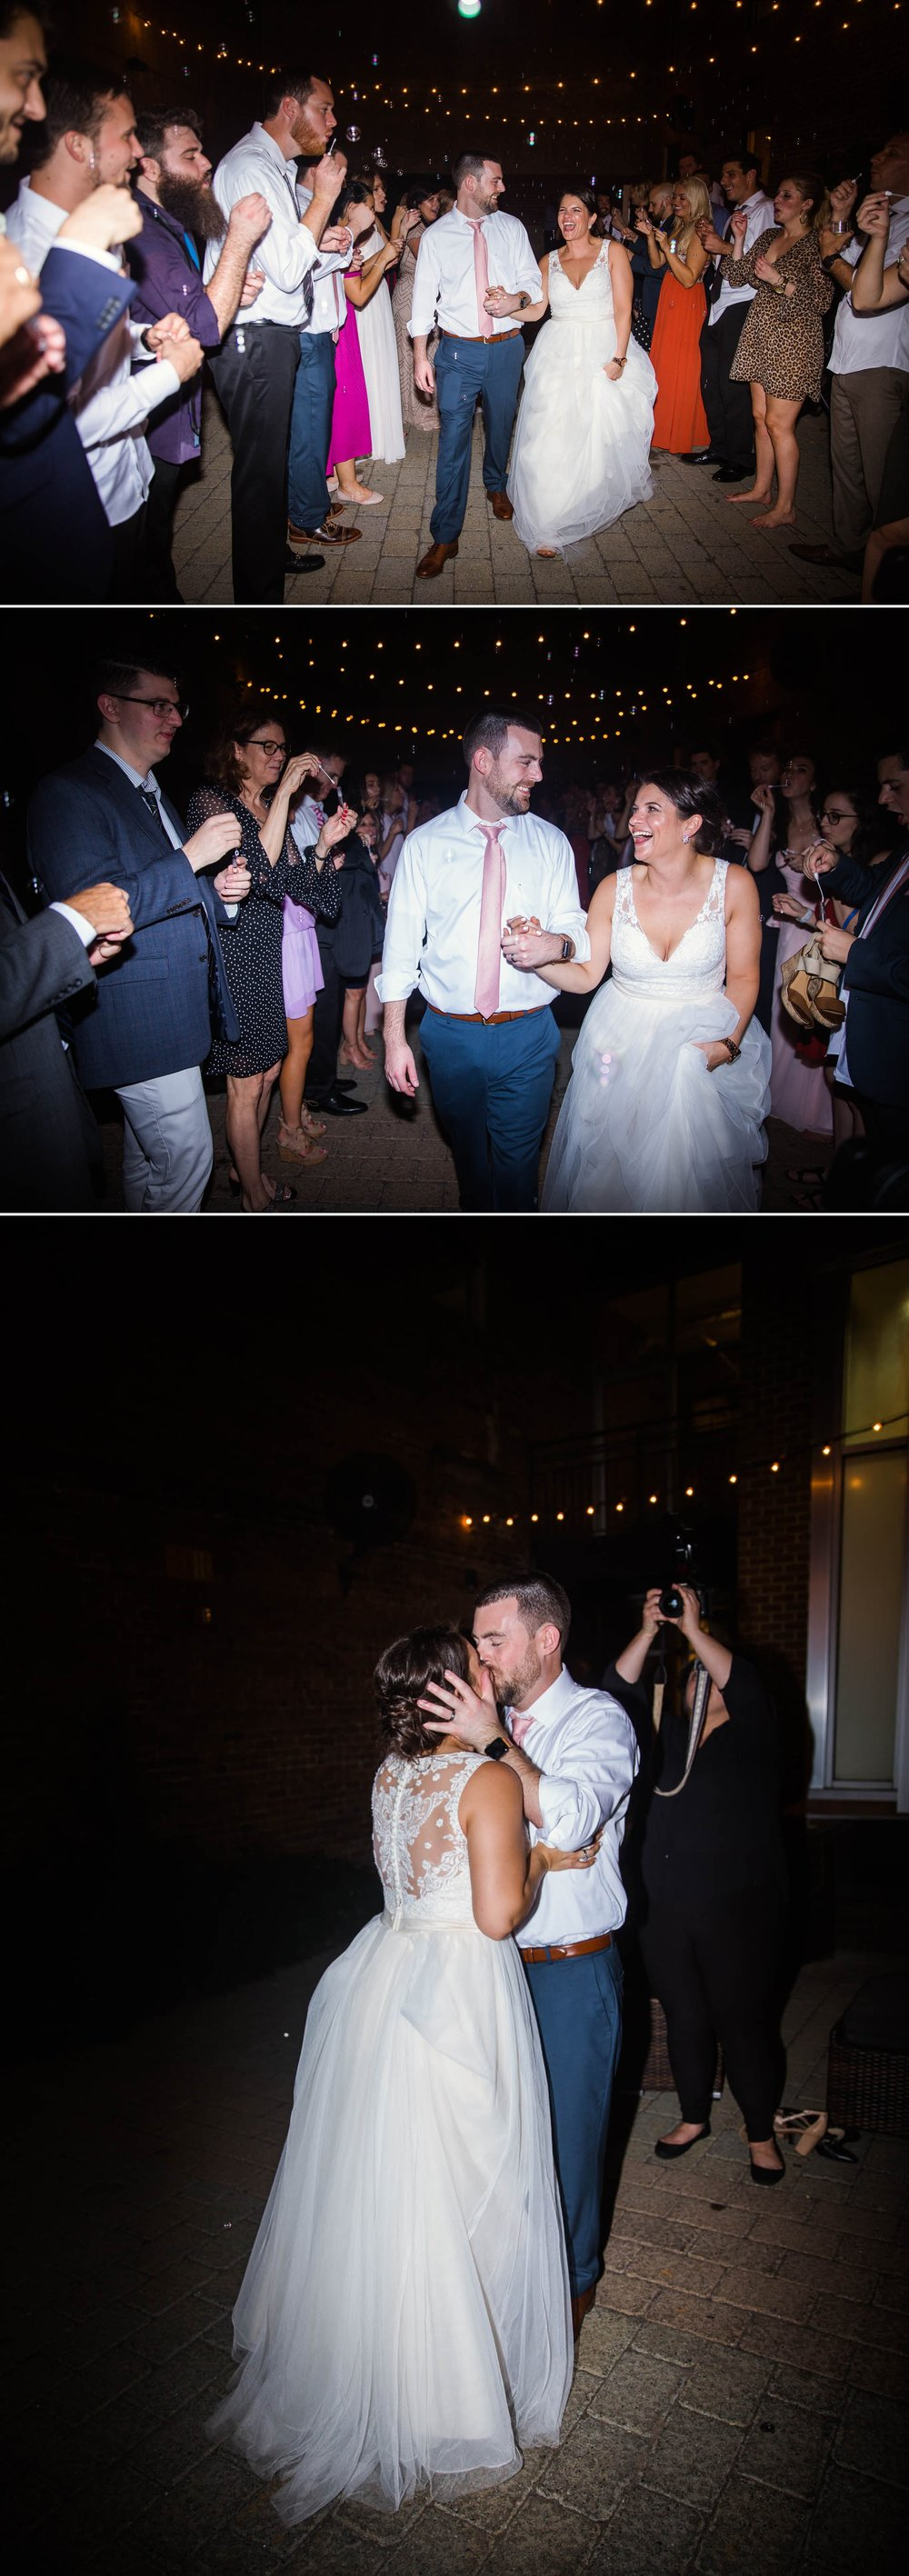 Exit - Reception - Clare + Wallace - The Jiddy Space - Raleigh North Carolina Wedding Photographer